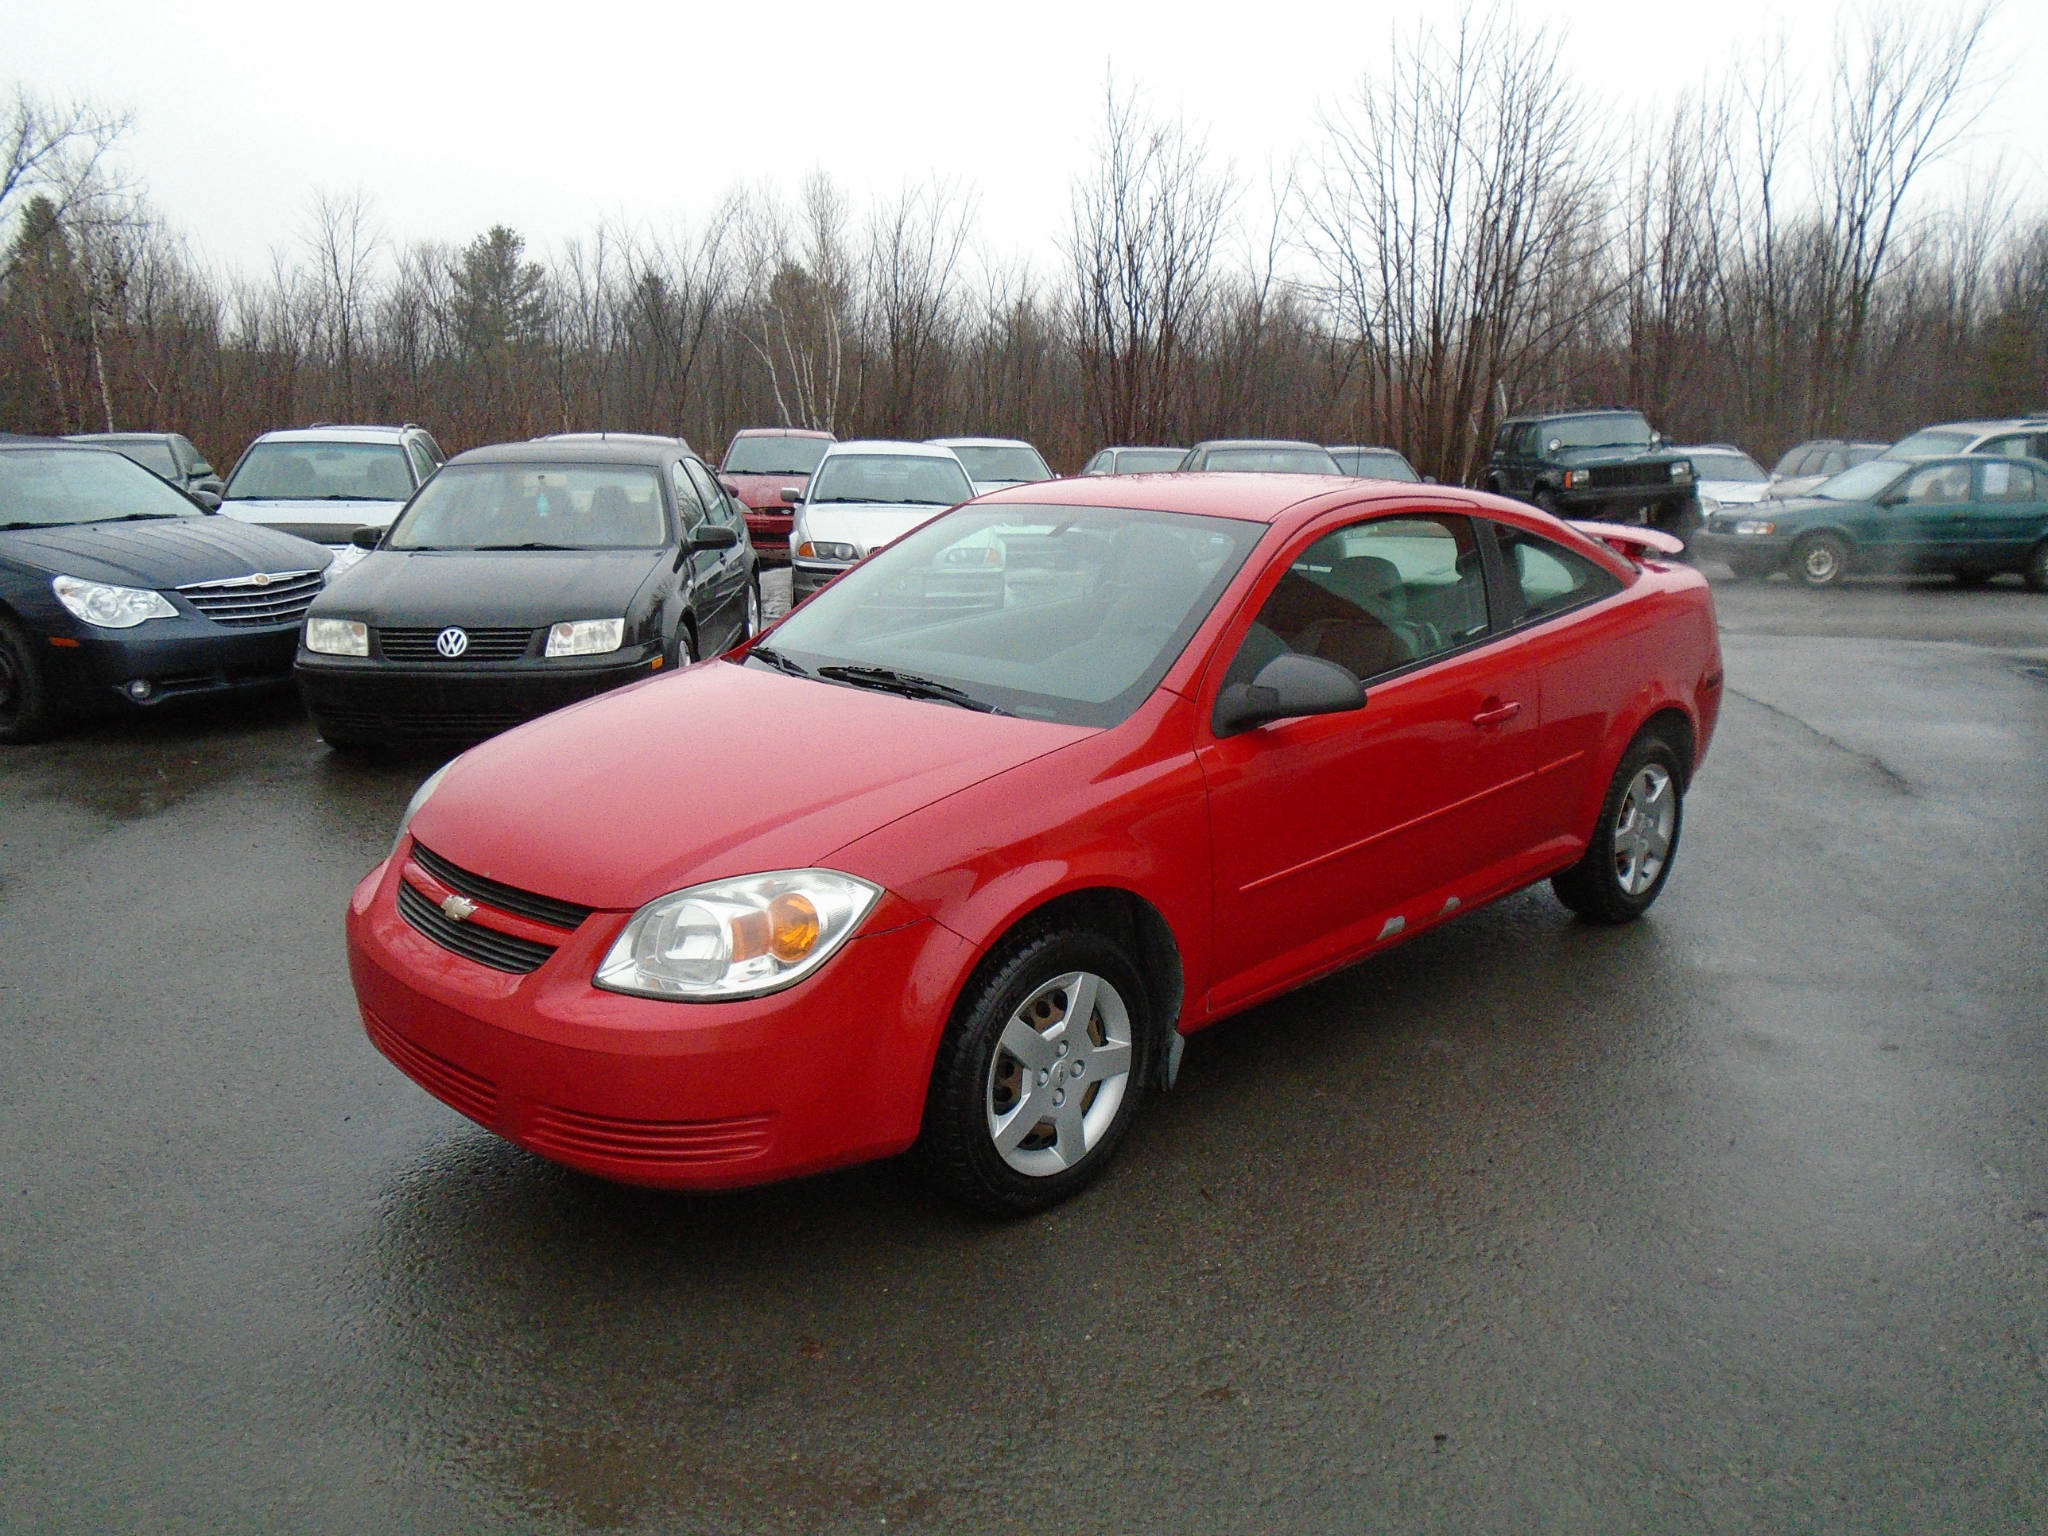 Chevrolet Cobalt 2.2 2005 photo - 11